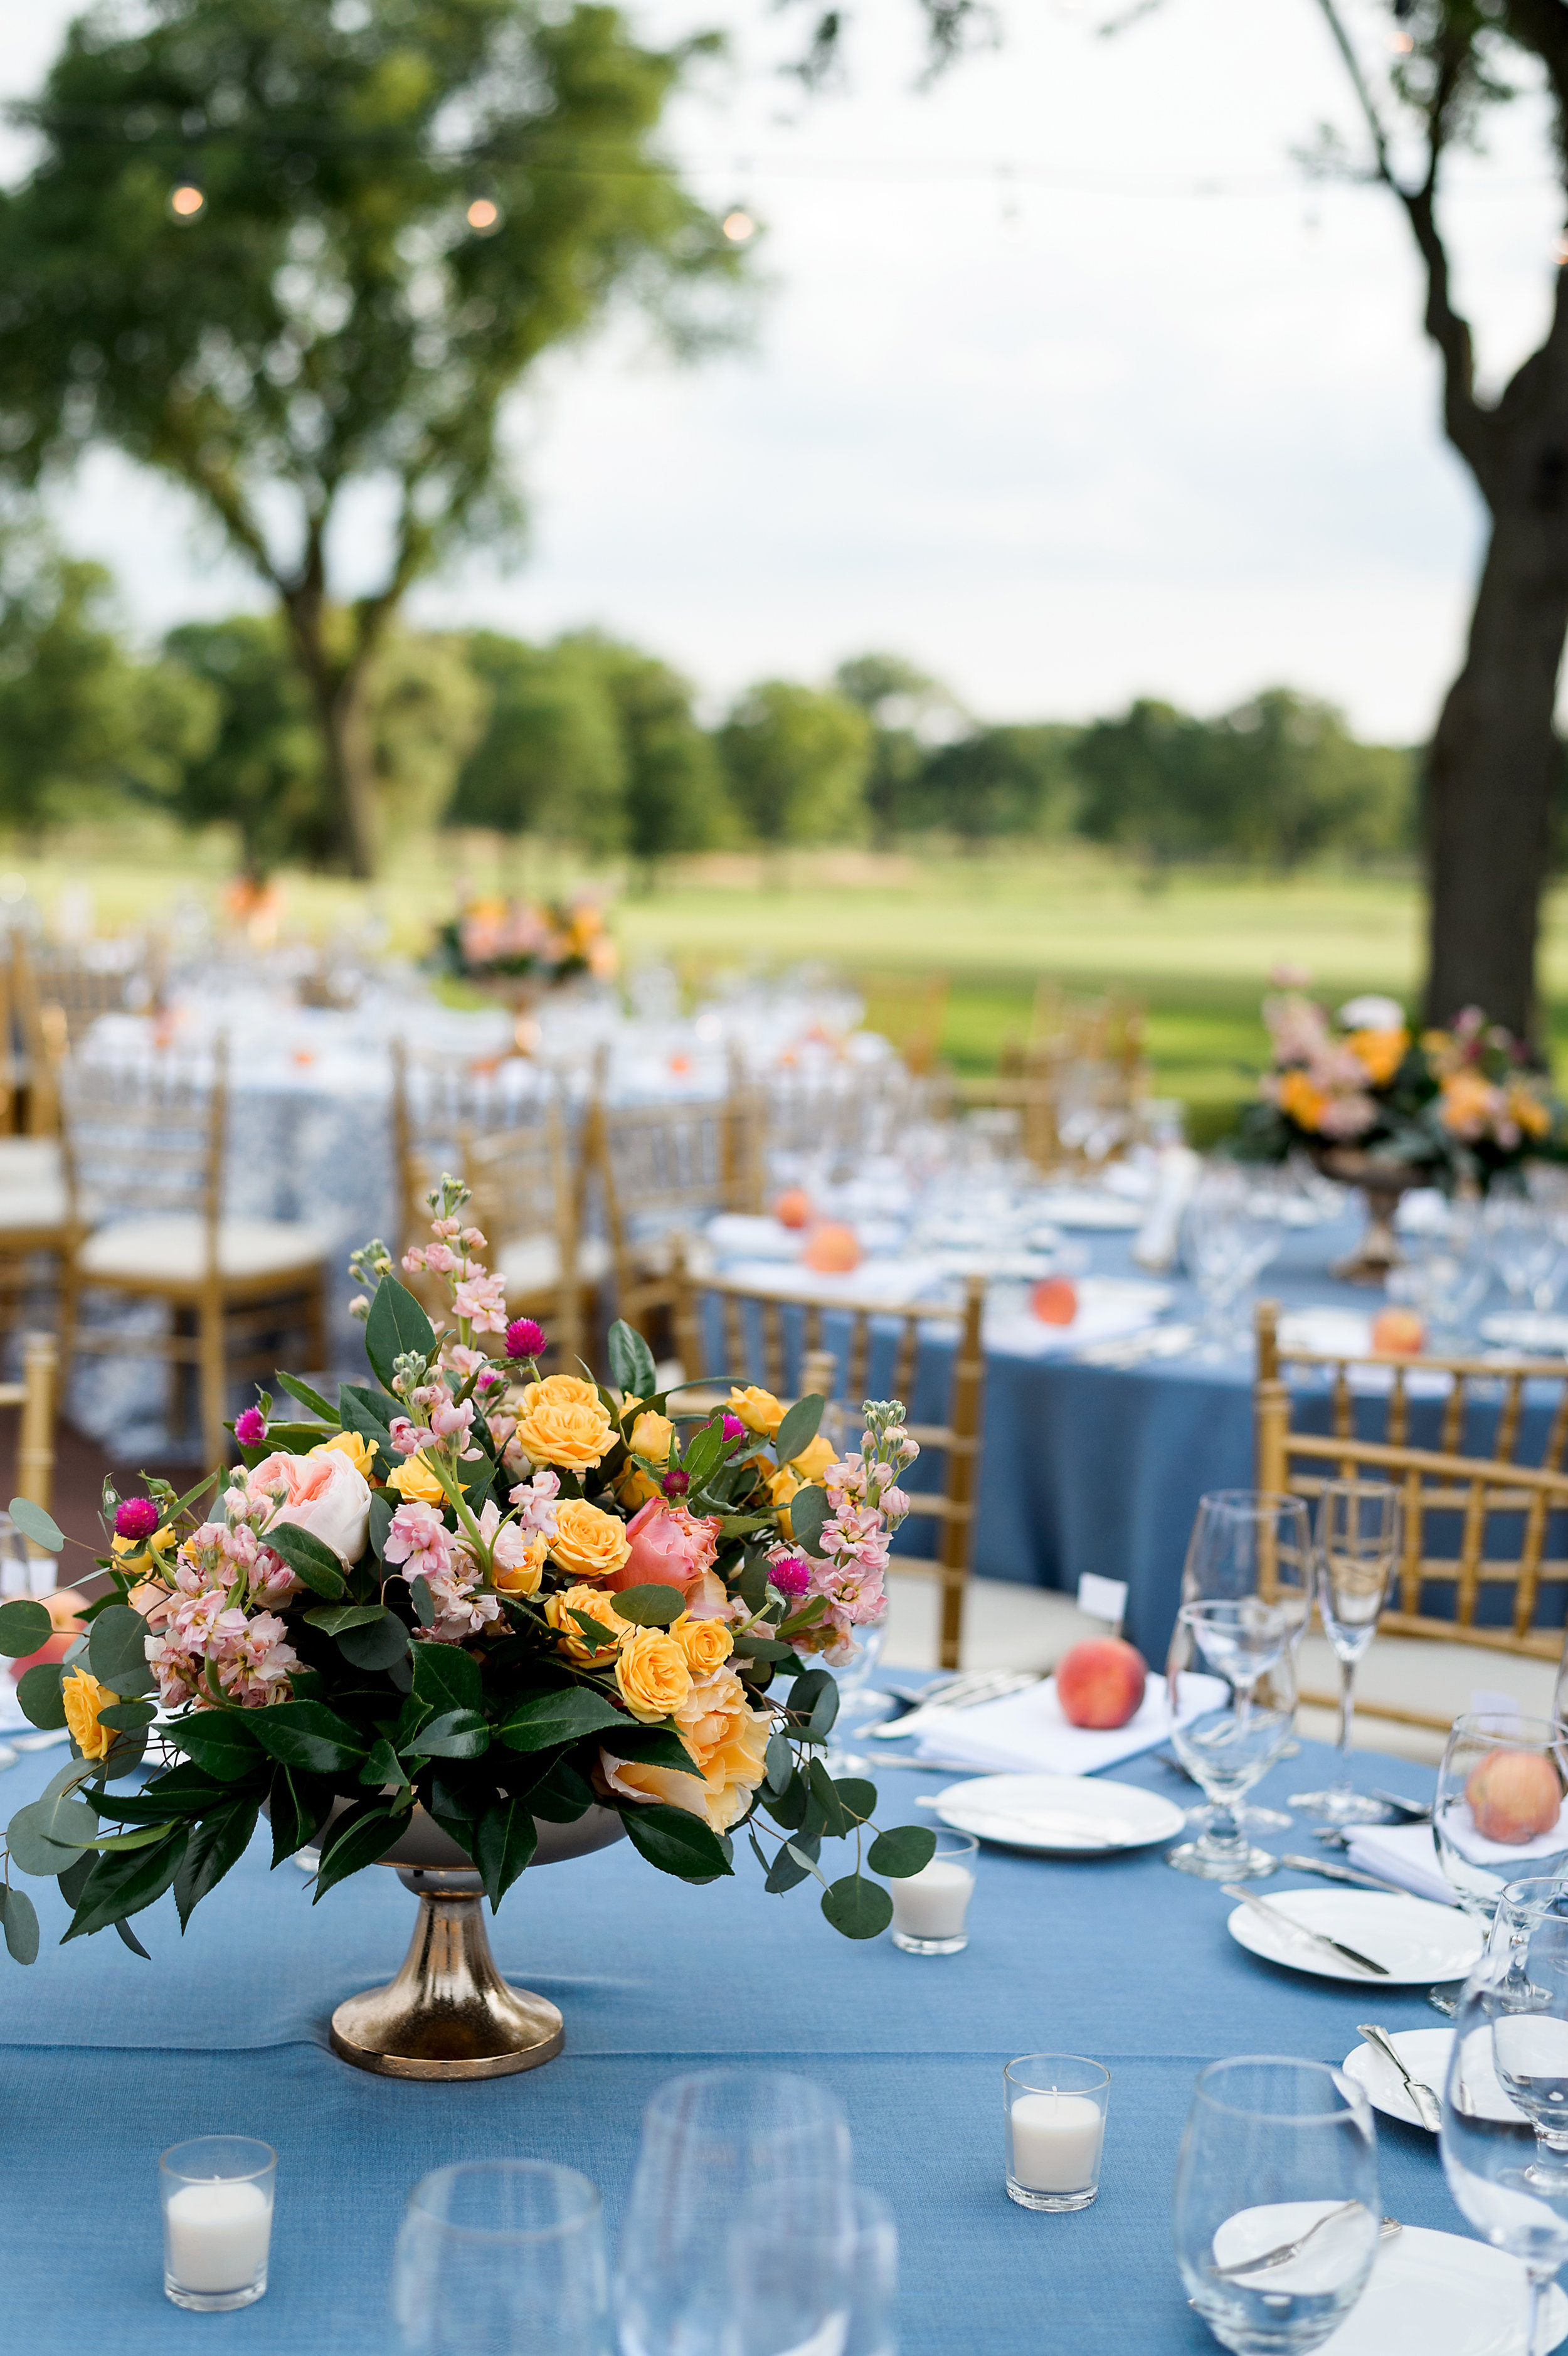 Floral by Fleur Inc, Image by Julia Franzosa Photography, Planning by Estera Events.